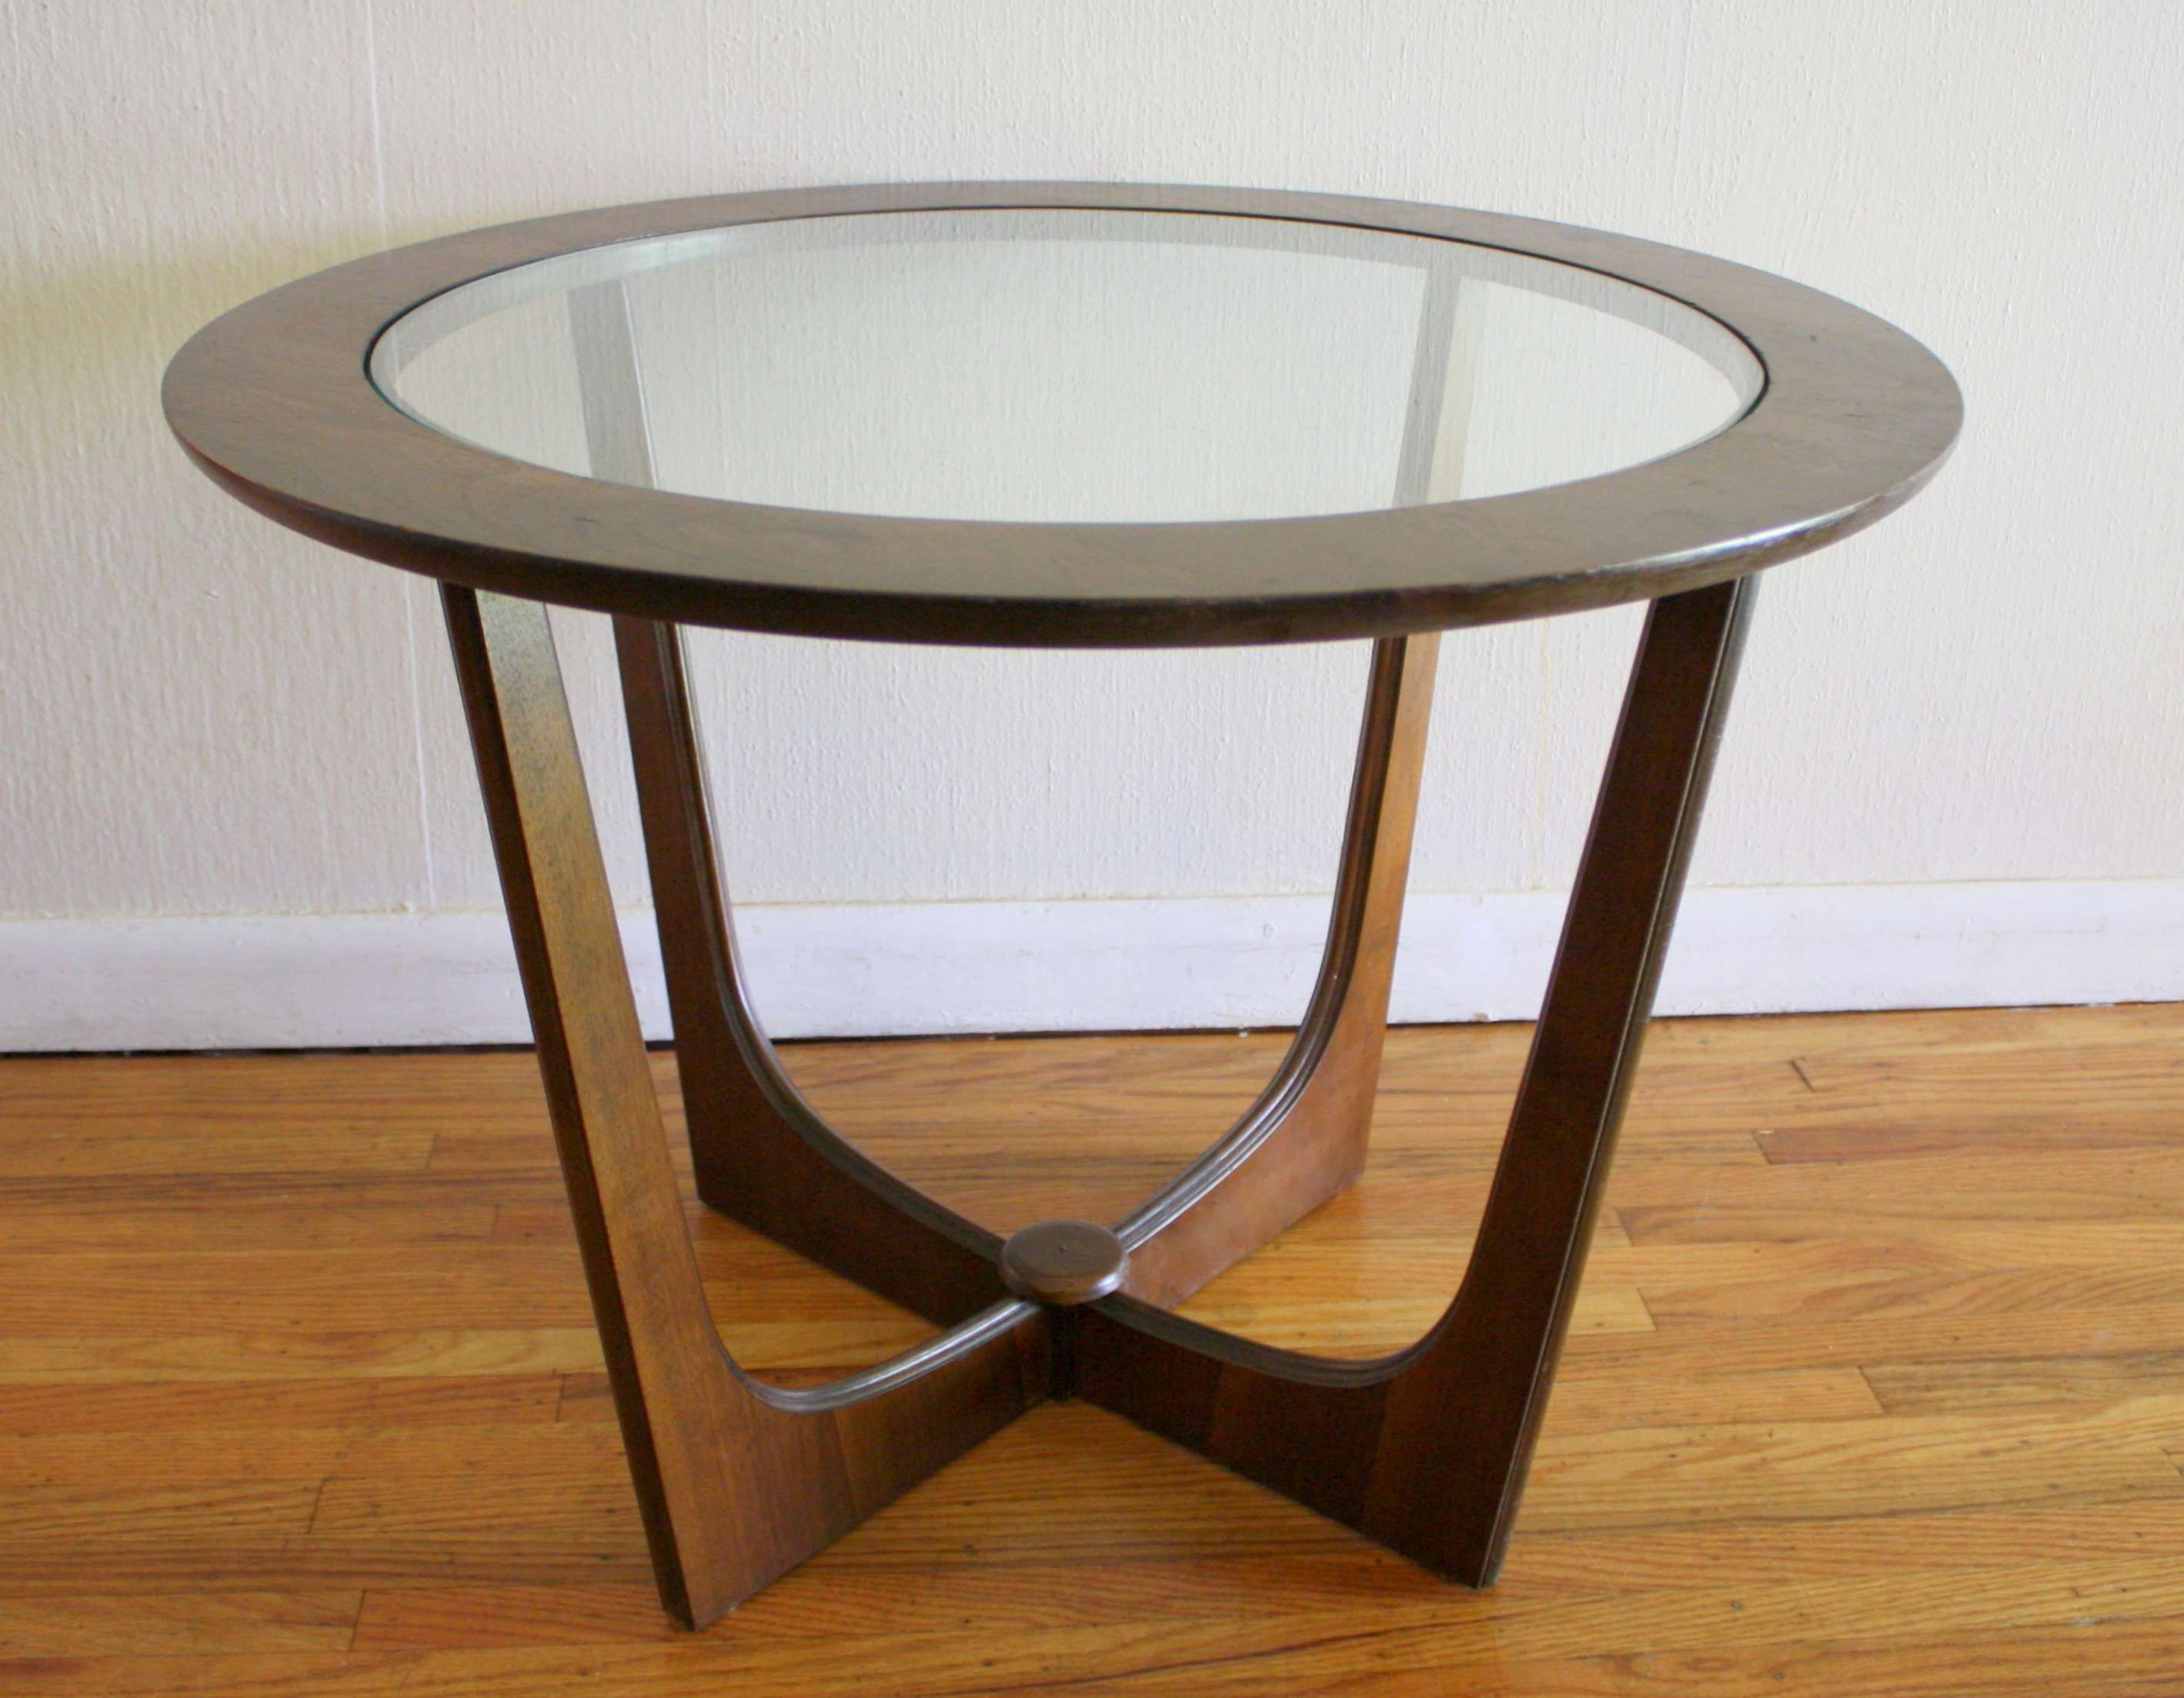 Round Coffee Table: Top Unique Round Wood And Glass Coffee Table Pertaining To Fashionable Round Glass And Wood Coffee Tables (View 14 of 20)